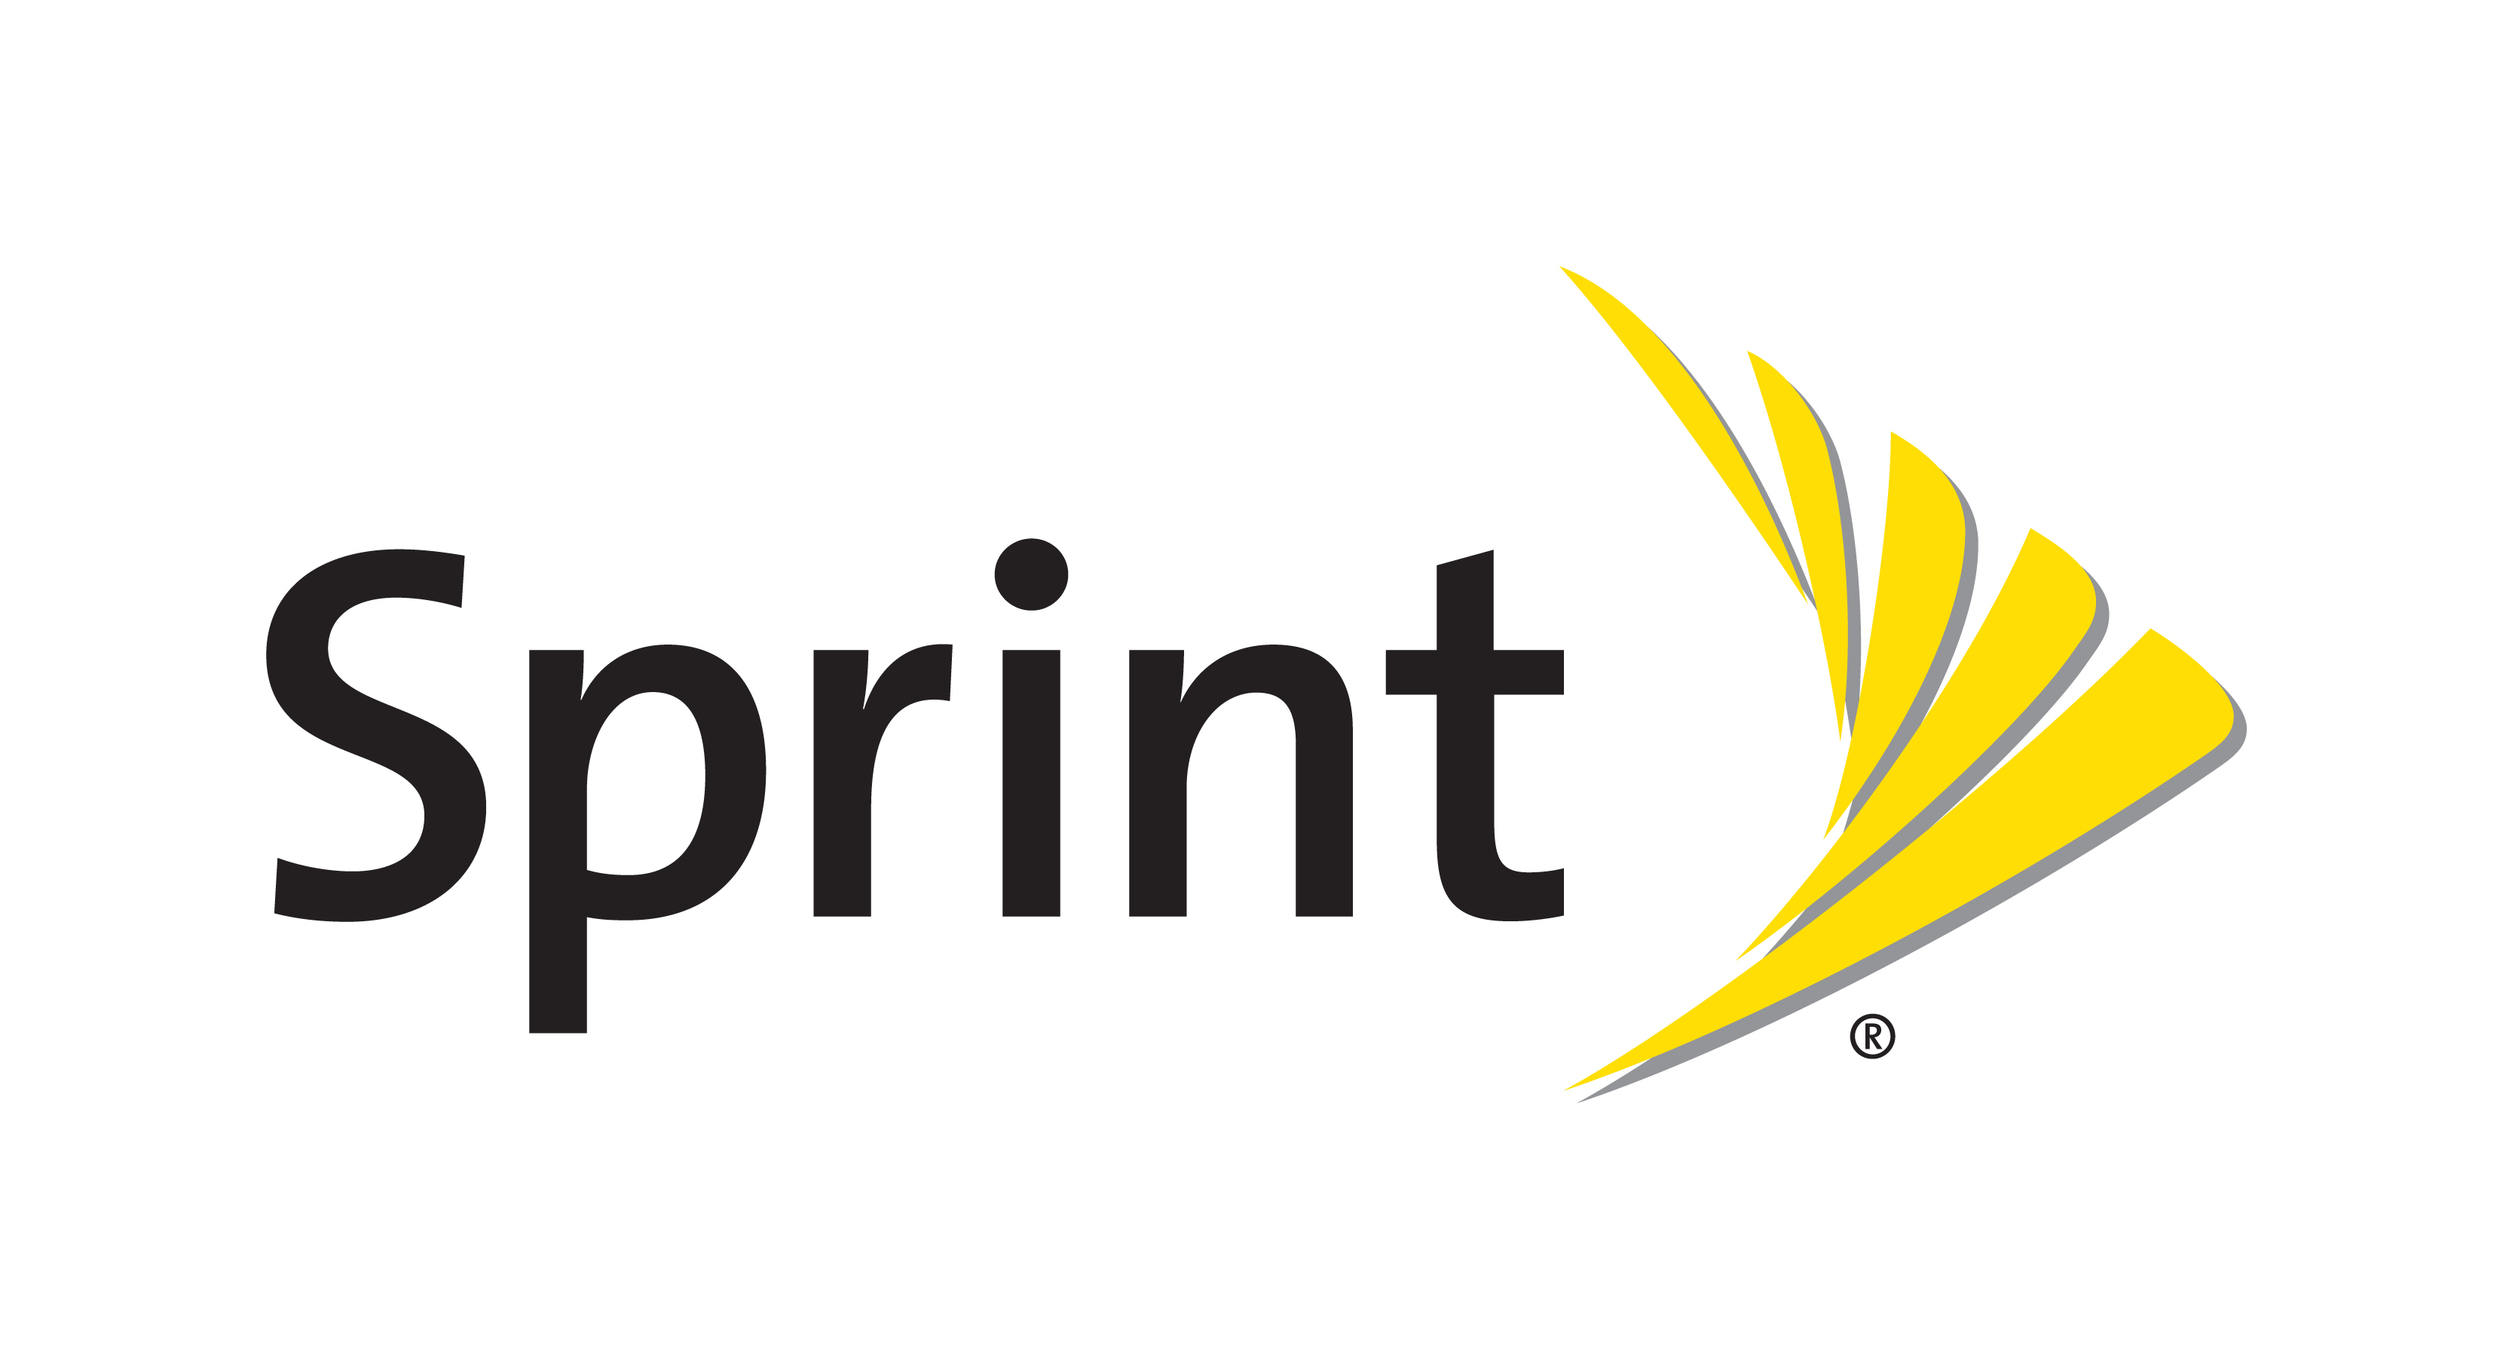 Sprint_Horizontal_Four-color_Black_r.jpg